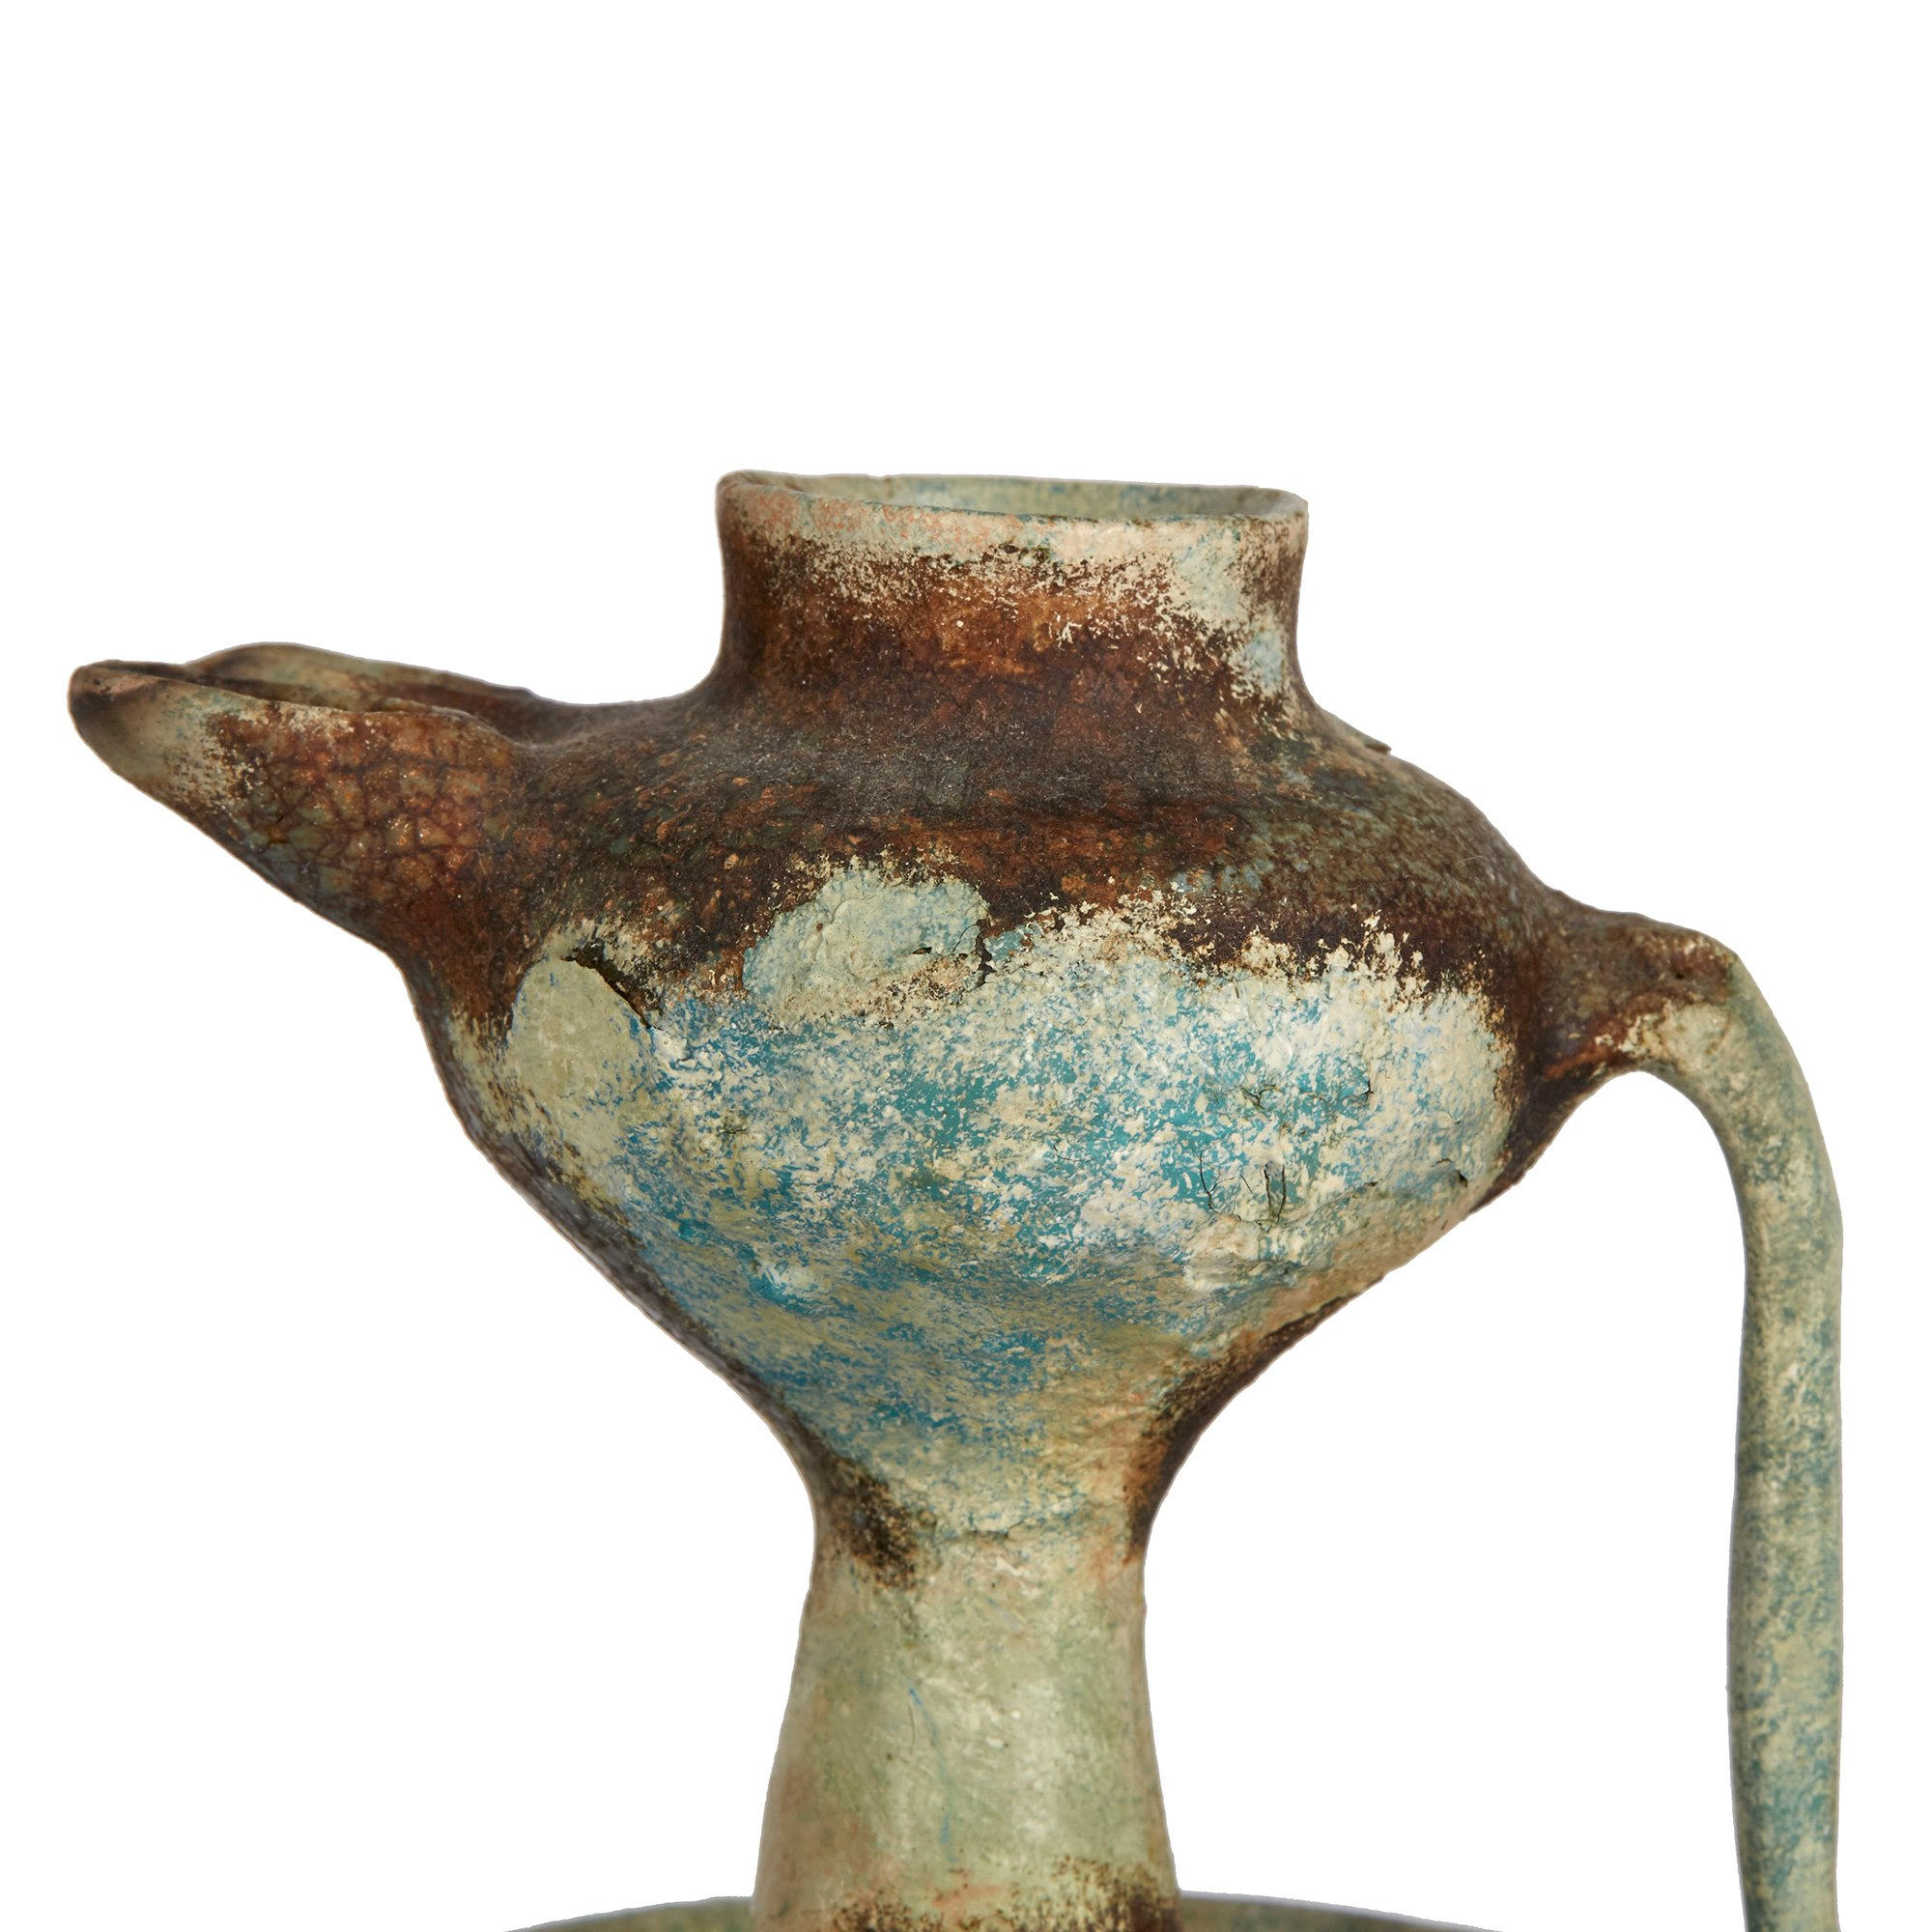 ANTIQUE ISLAMIC TWIN FLAME GLAZED POTTERY OIL LAMP 15TH C. Dates from the 15th Century